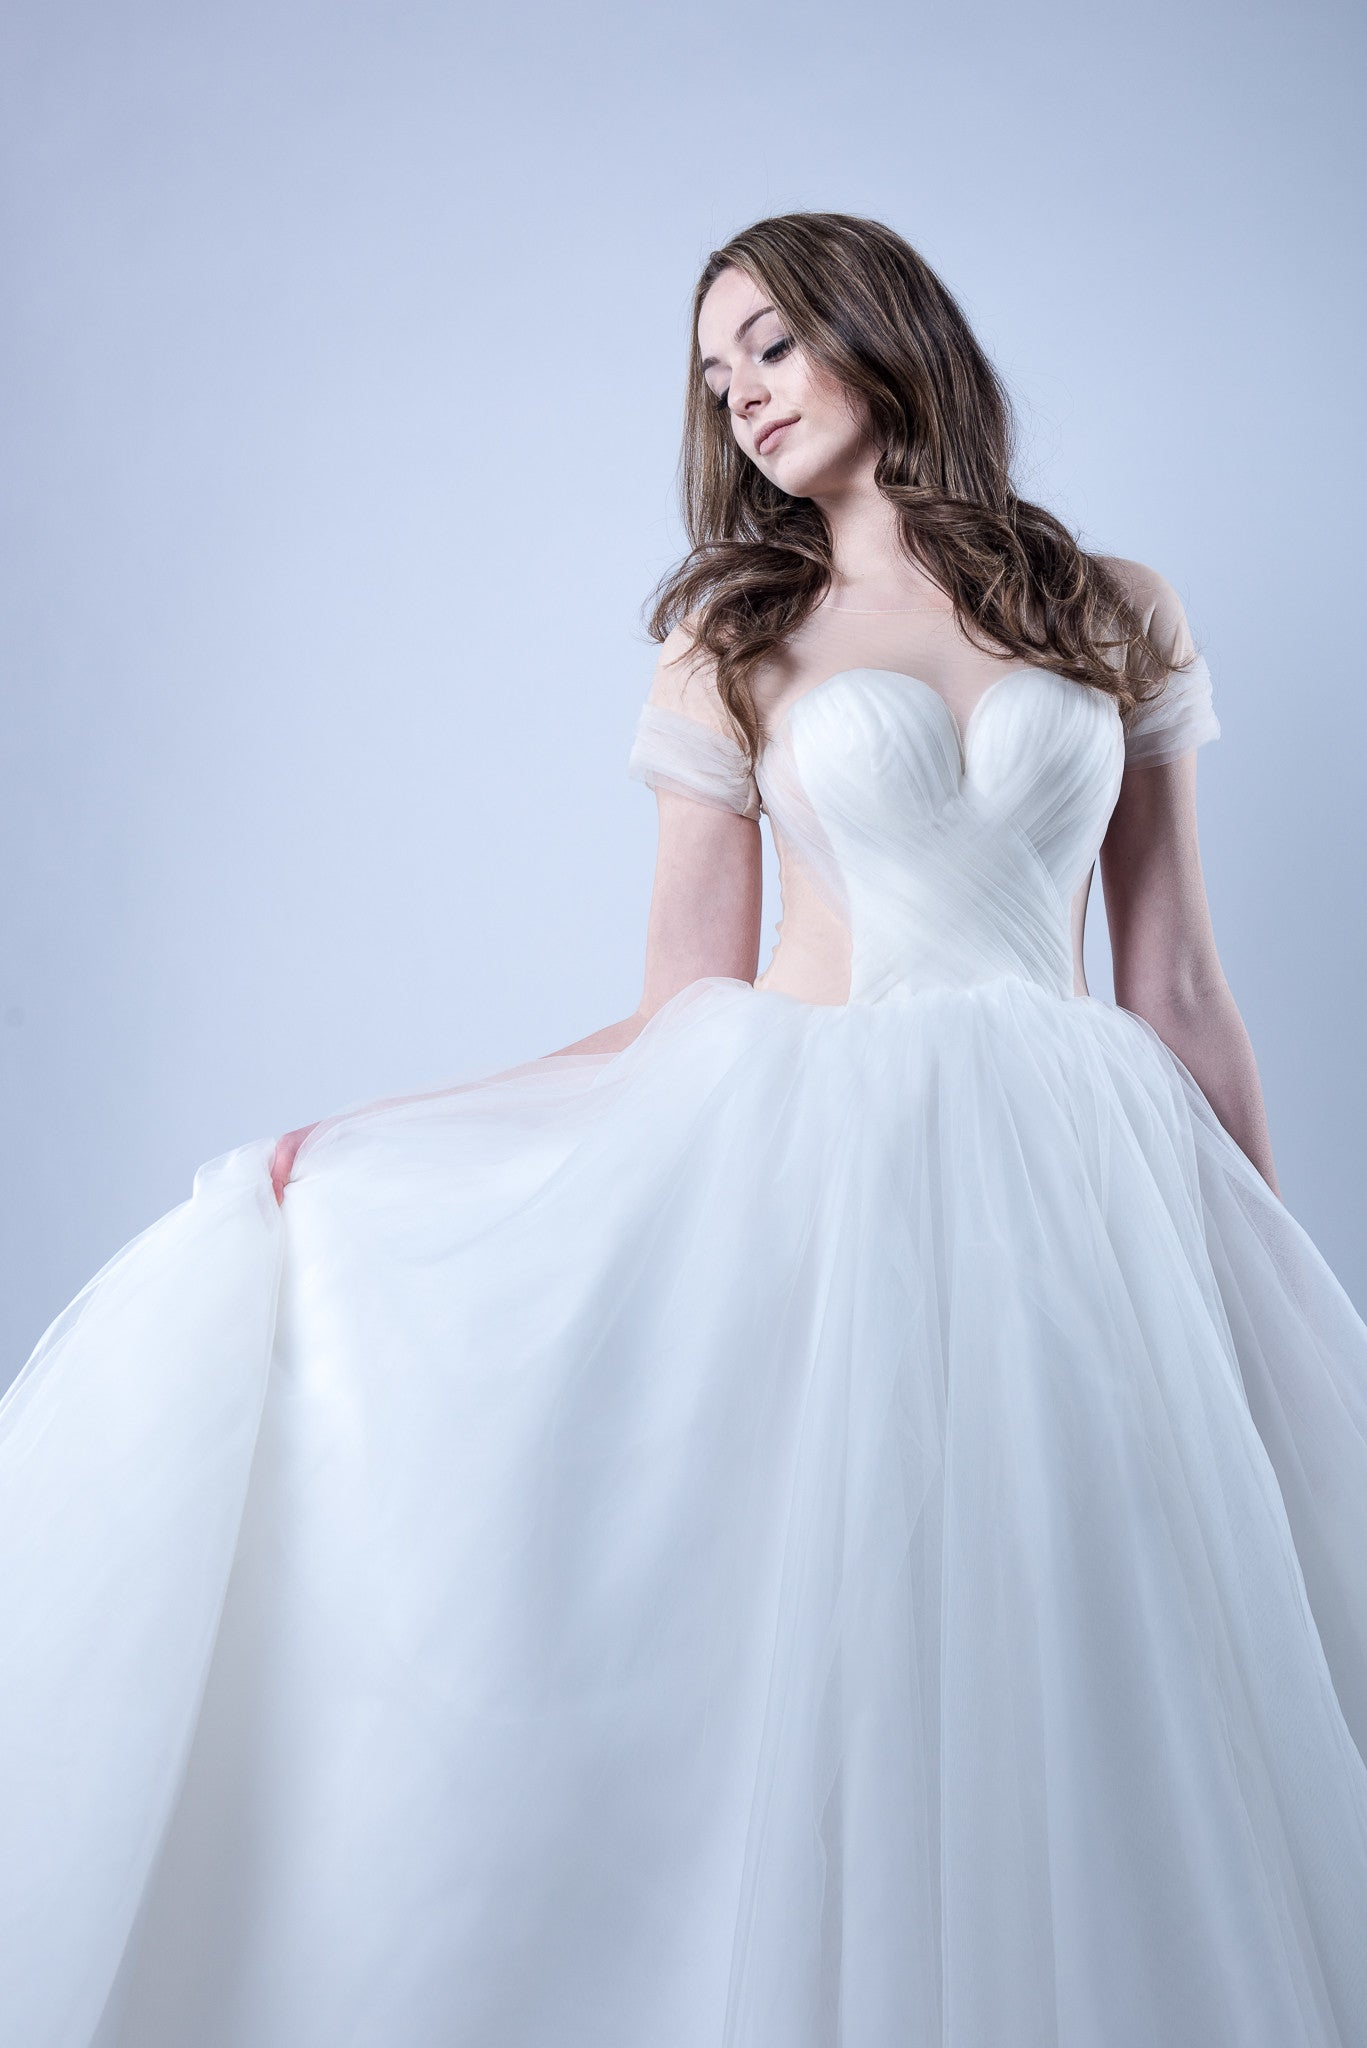 Tulle Ball Gown Wedding Dress (#Kennadie) - Dream Dresses by P.M.N  - 2